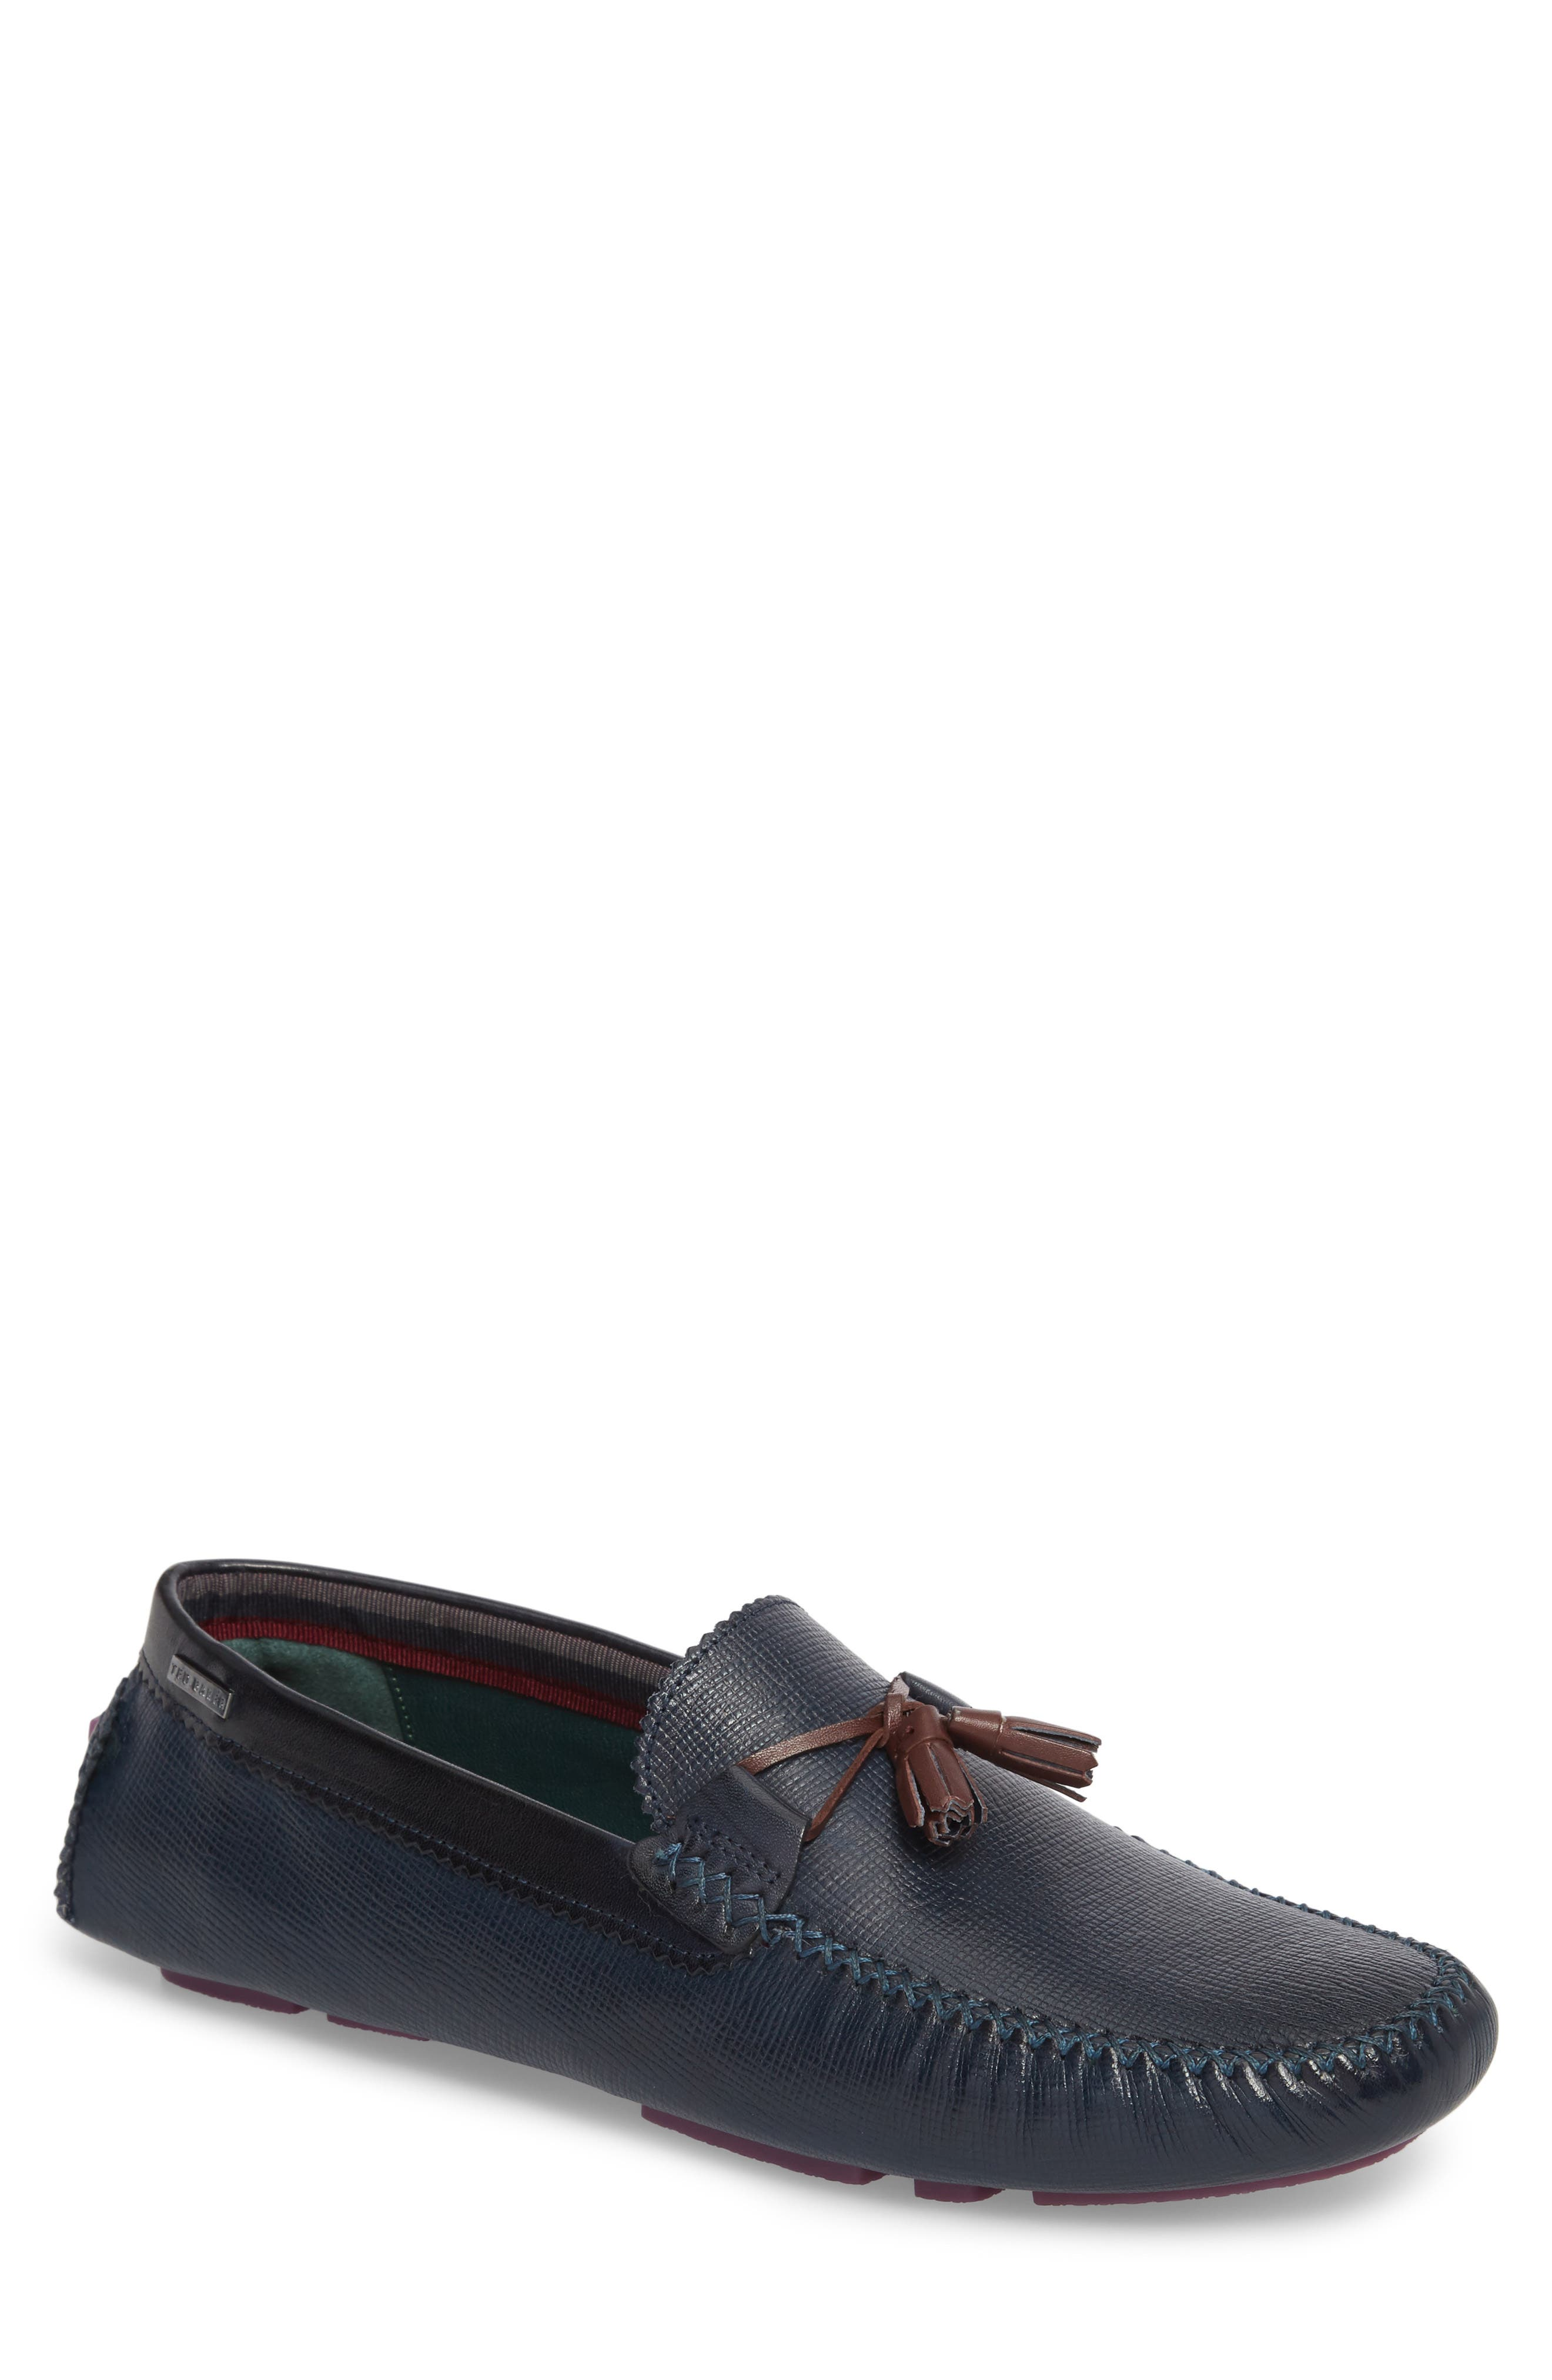 Boy's Men's Bows Stitched Slip-On Classic Spring/Summer Loafers